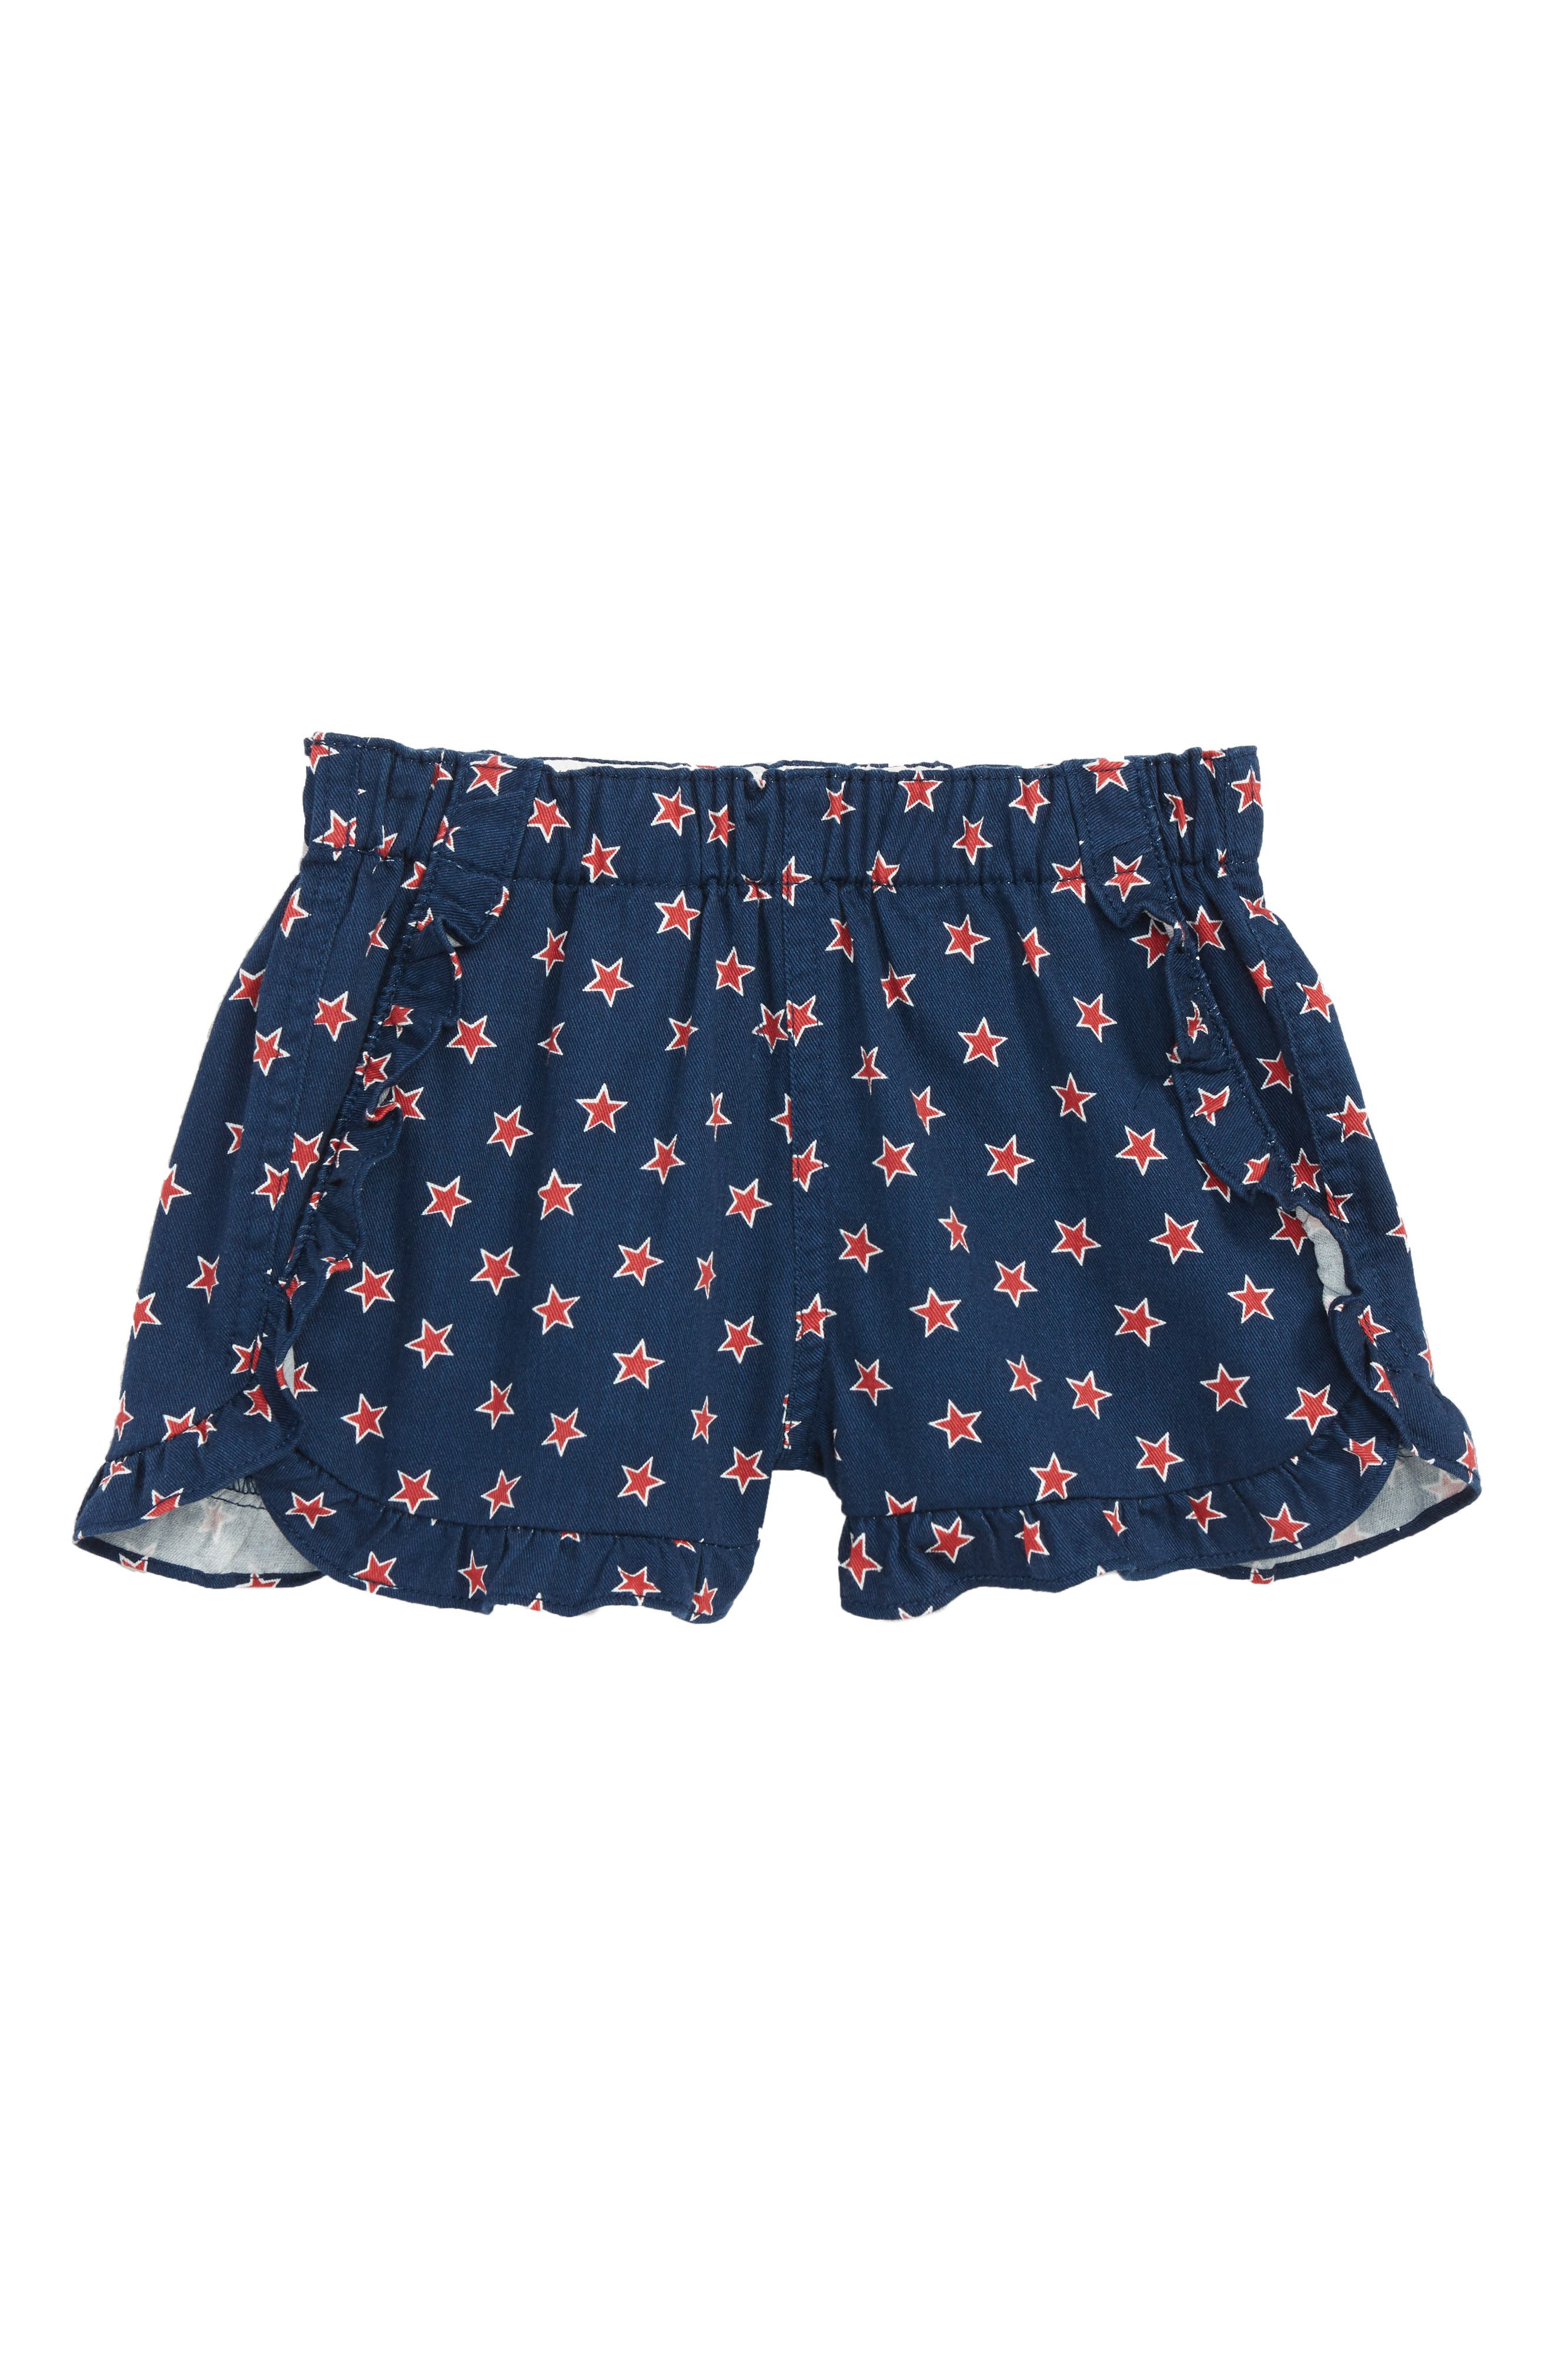 CREWCUTS BY J.CREW,                             Star Print Ruffle Pull-On Shorts,                             Main thumbnail 1, color,                             400